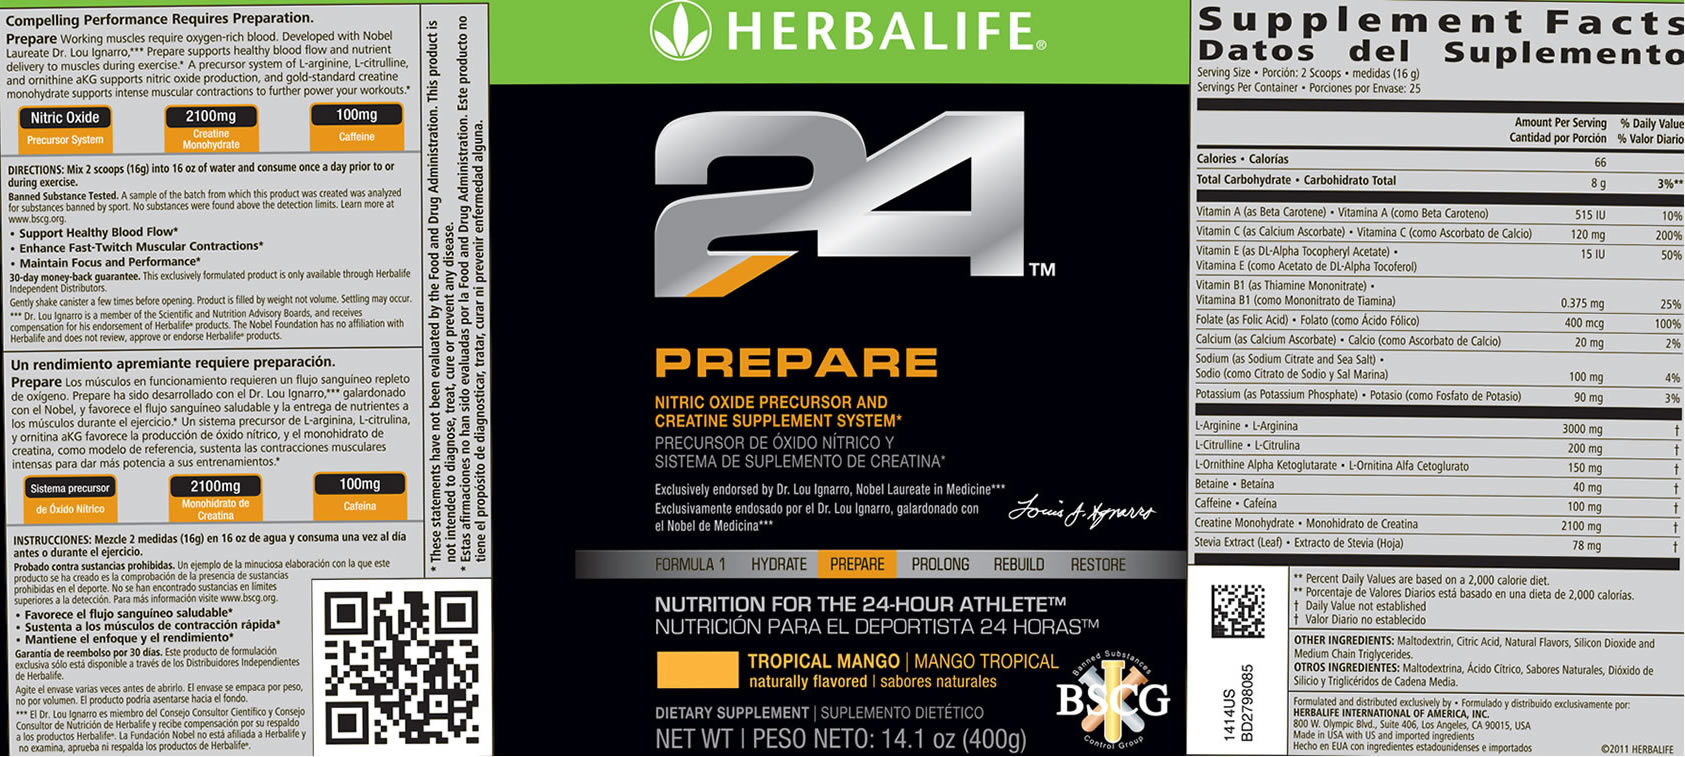 herbalife rebuild strength nutrition facts